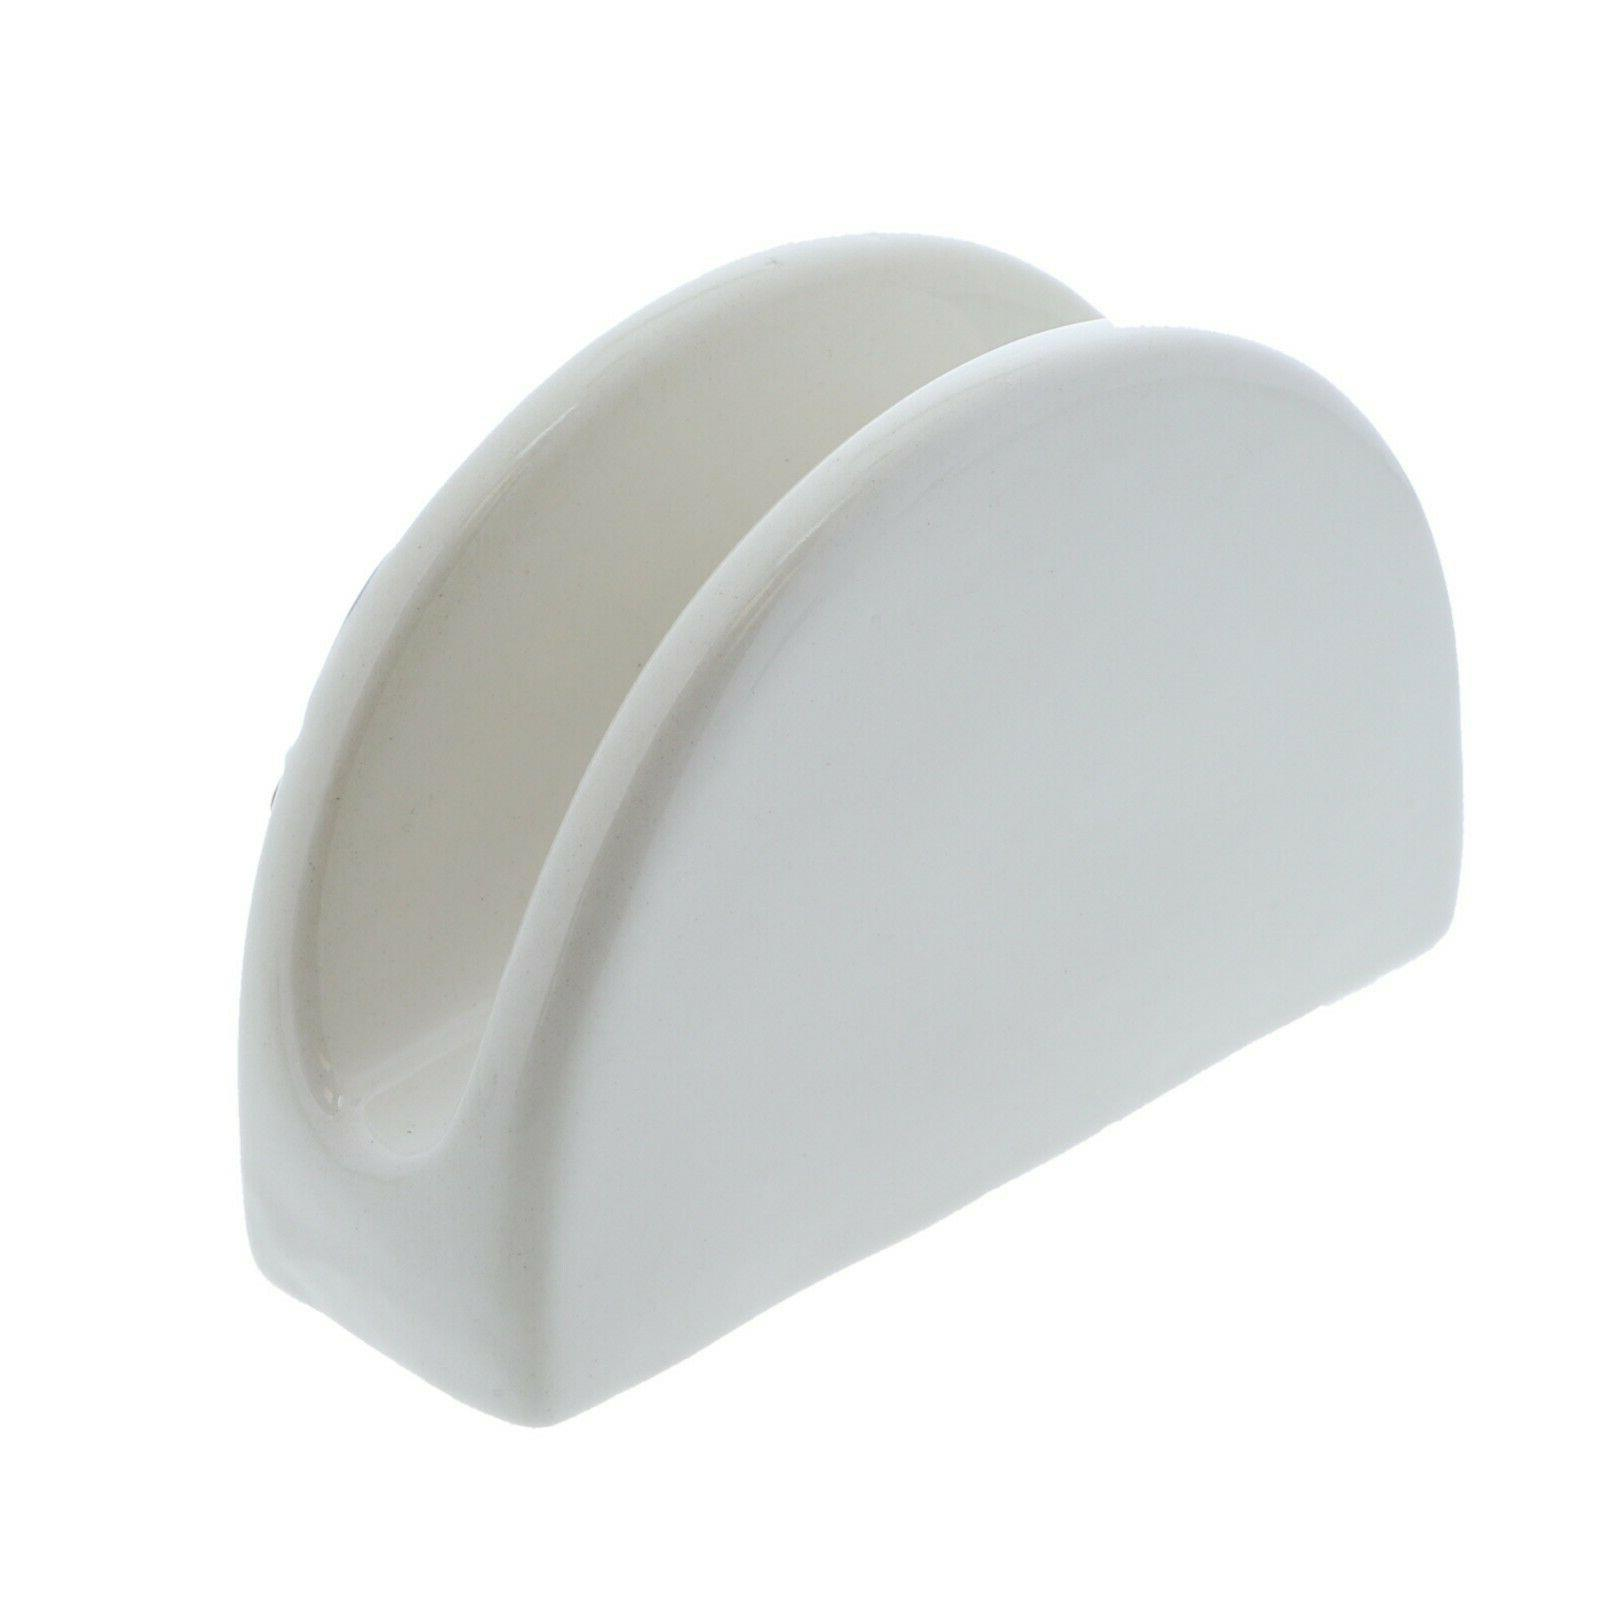 Ceramic Napkin White w/Lemon Napkin Stand Dispenser Kitchen